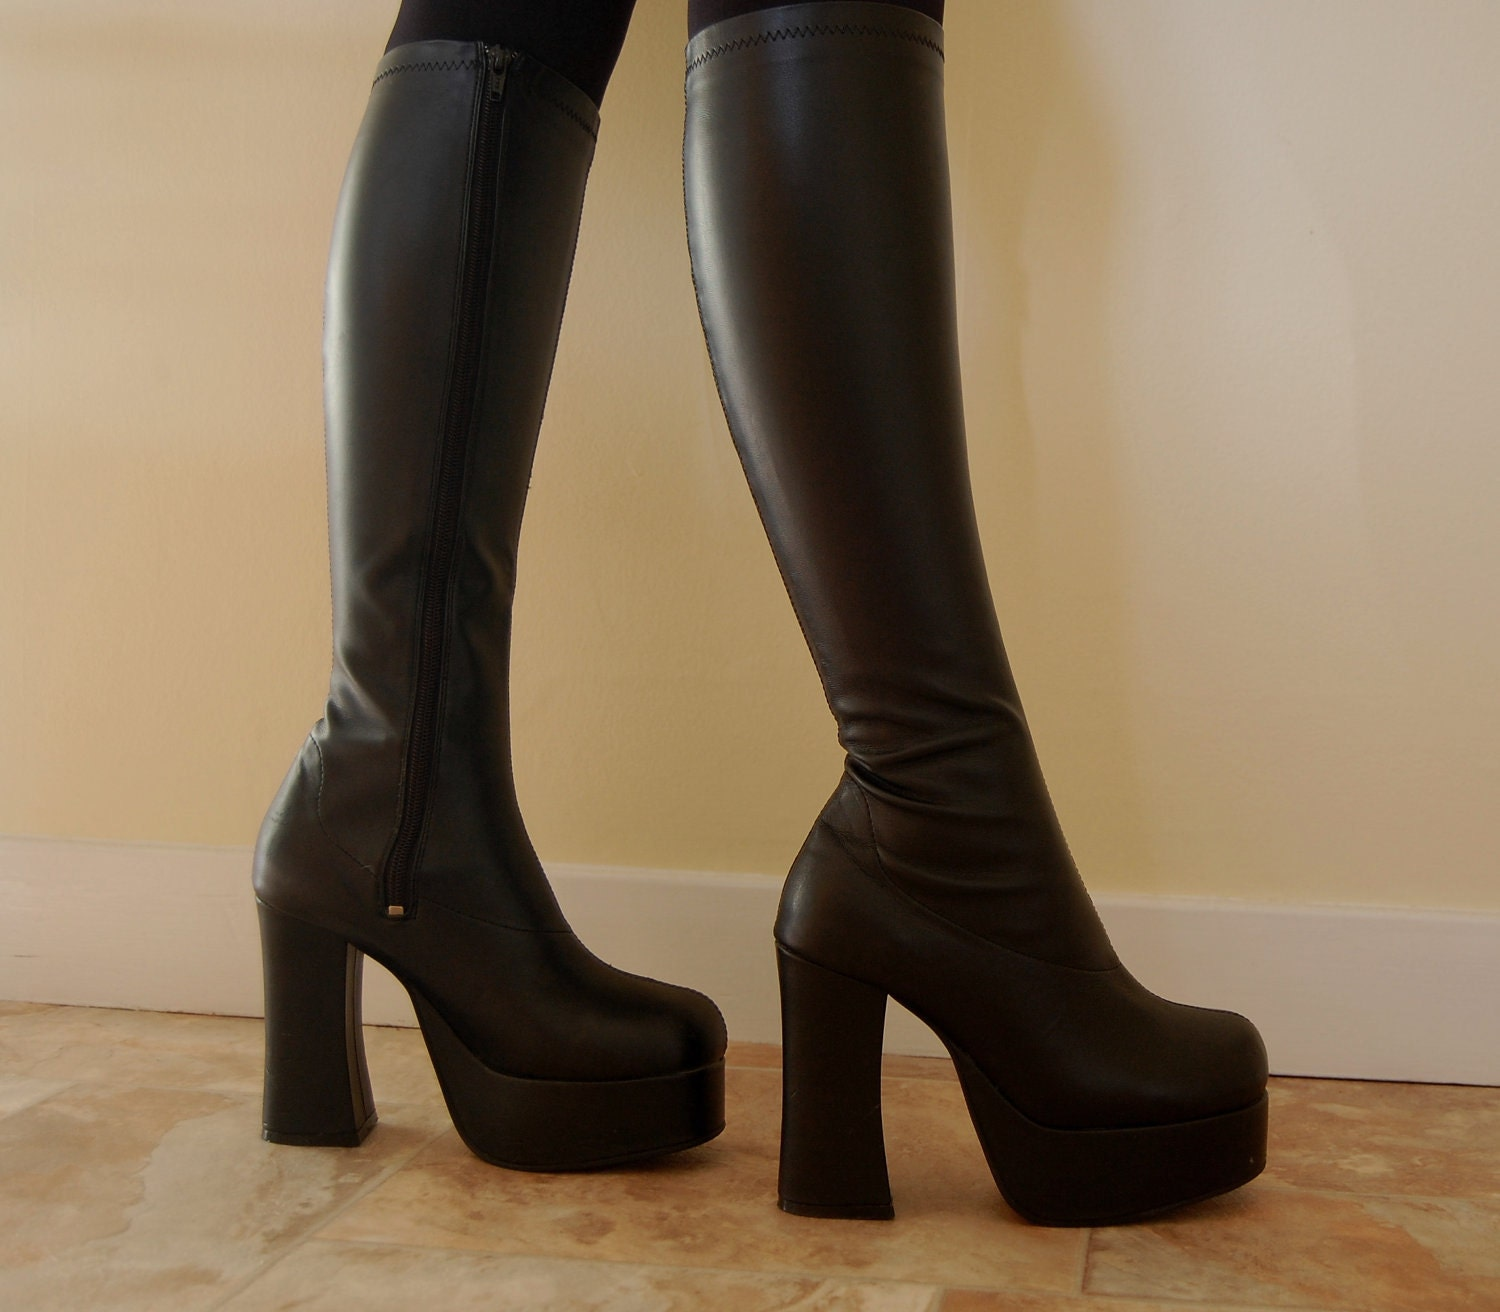 90s Grunge Goth Black Knee High Chunky Platform Boots UK 4 /